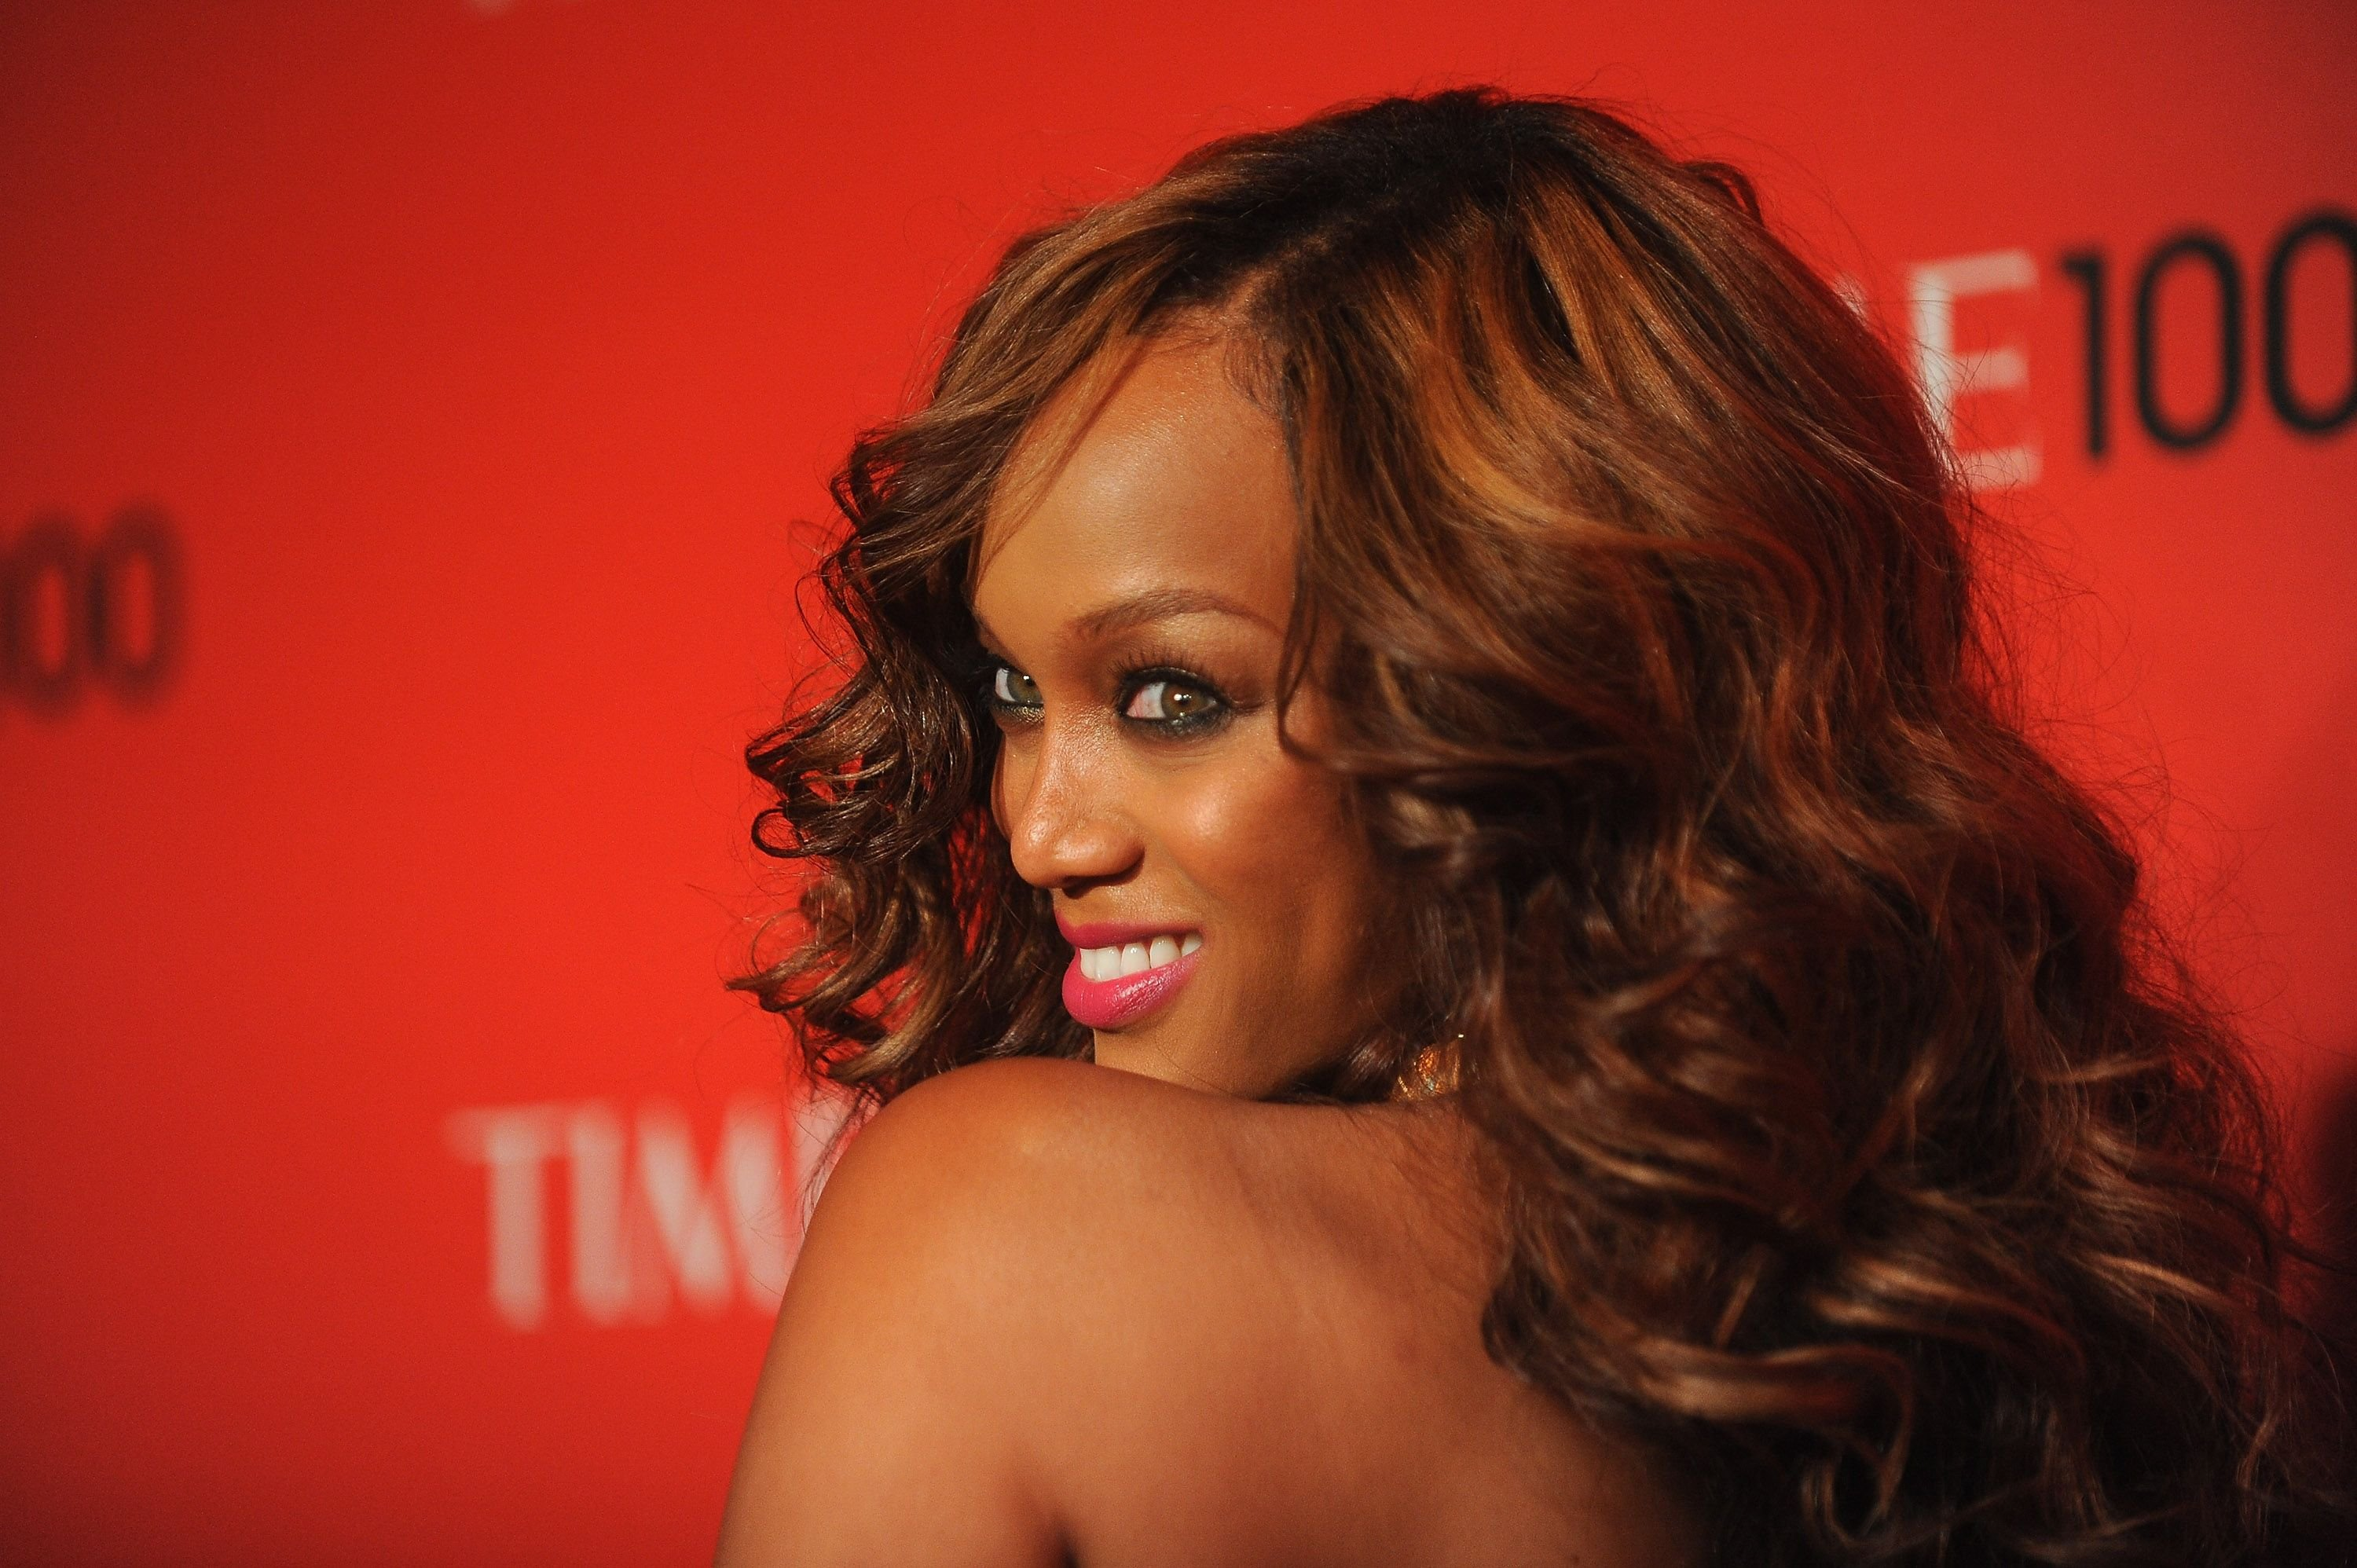 Tyra Banks during the TIME 100 Gala celebrating TIME'S 100 Most Influential People In The World at Jazz at Lincoln Center on April 24, 2012 in New York City. | Source: Getty Images